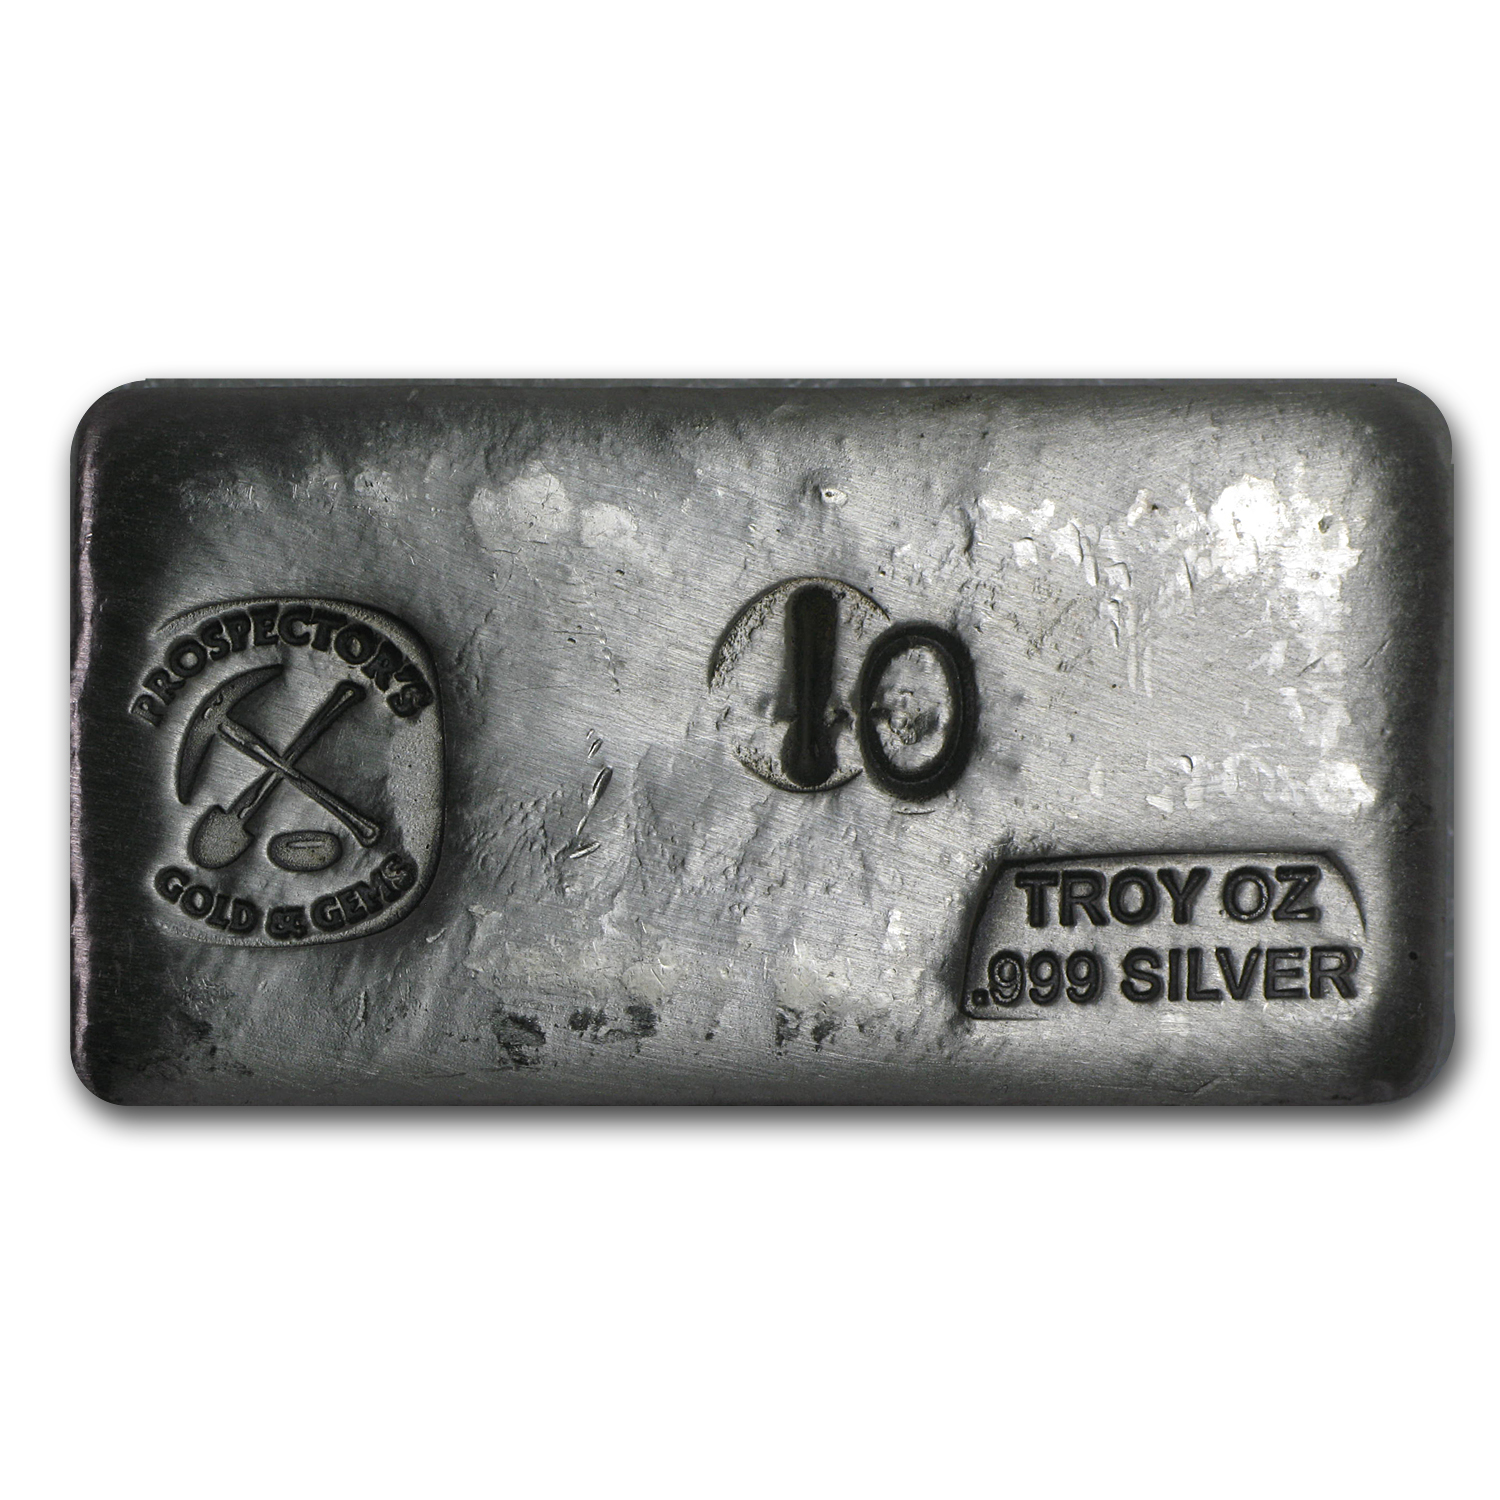 10 oz Silver Bar - Prospector's Gold & Gems